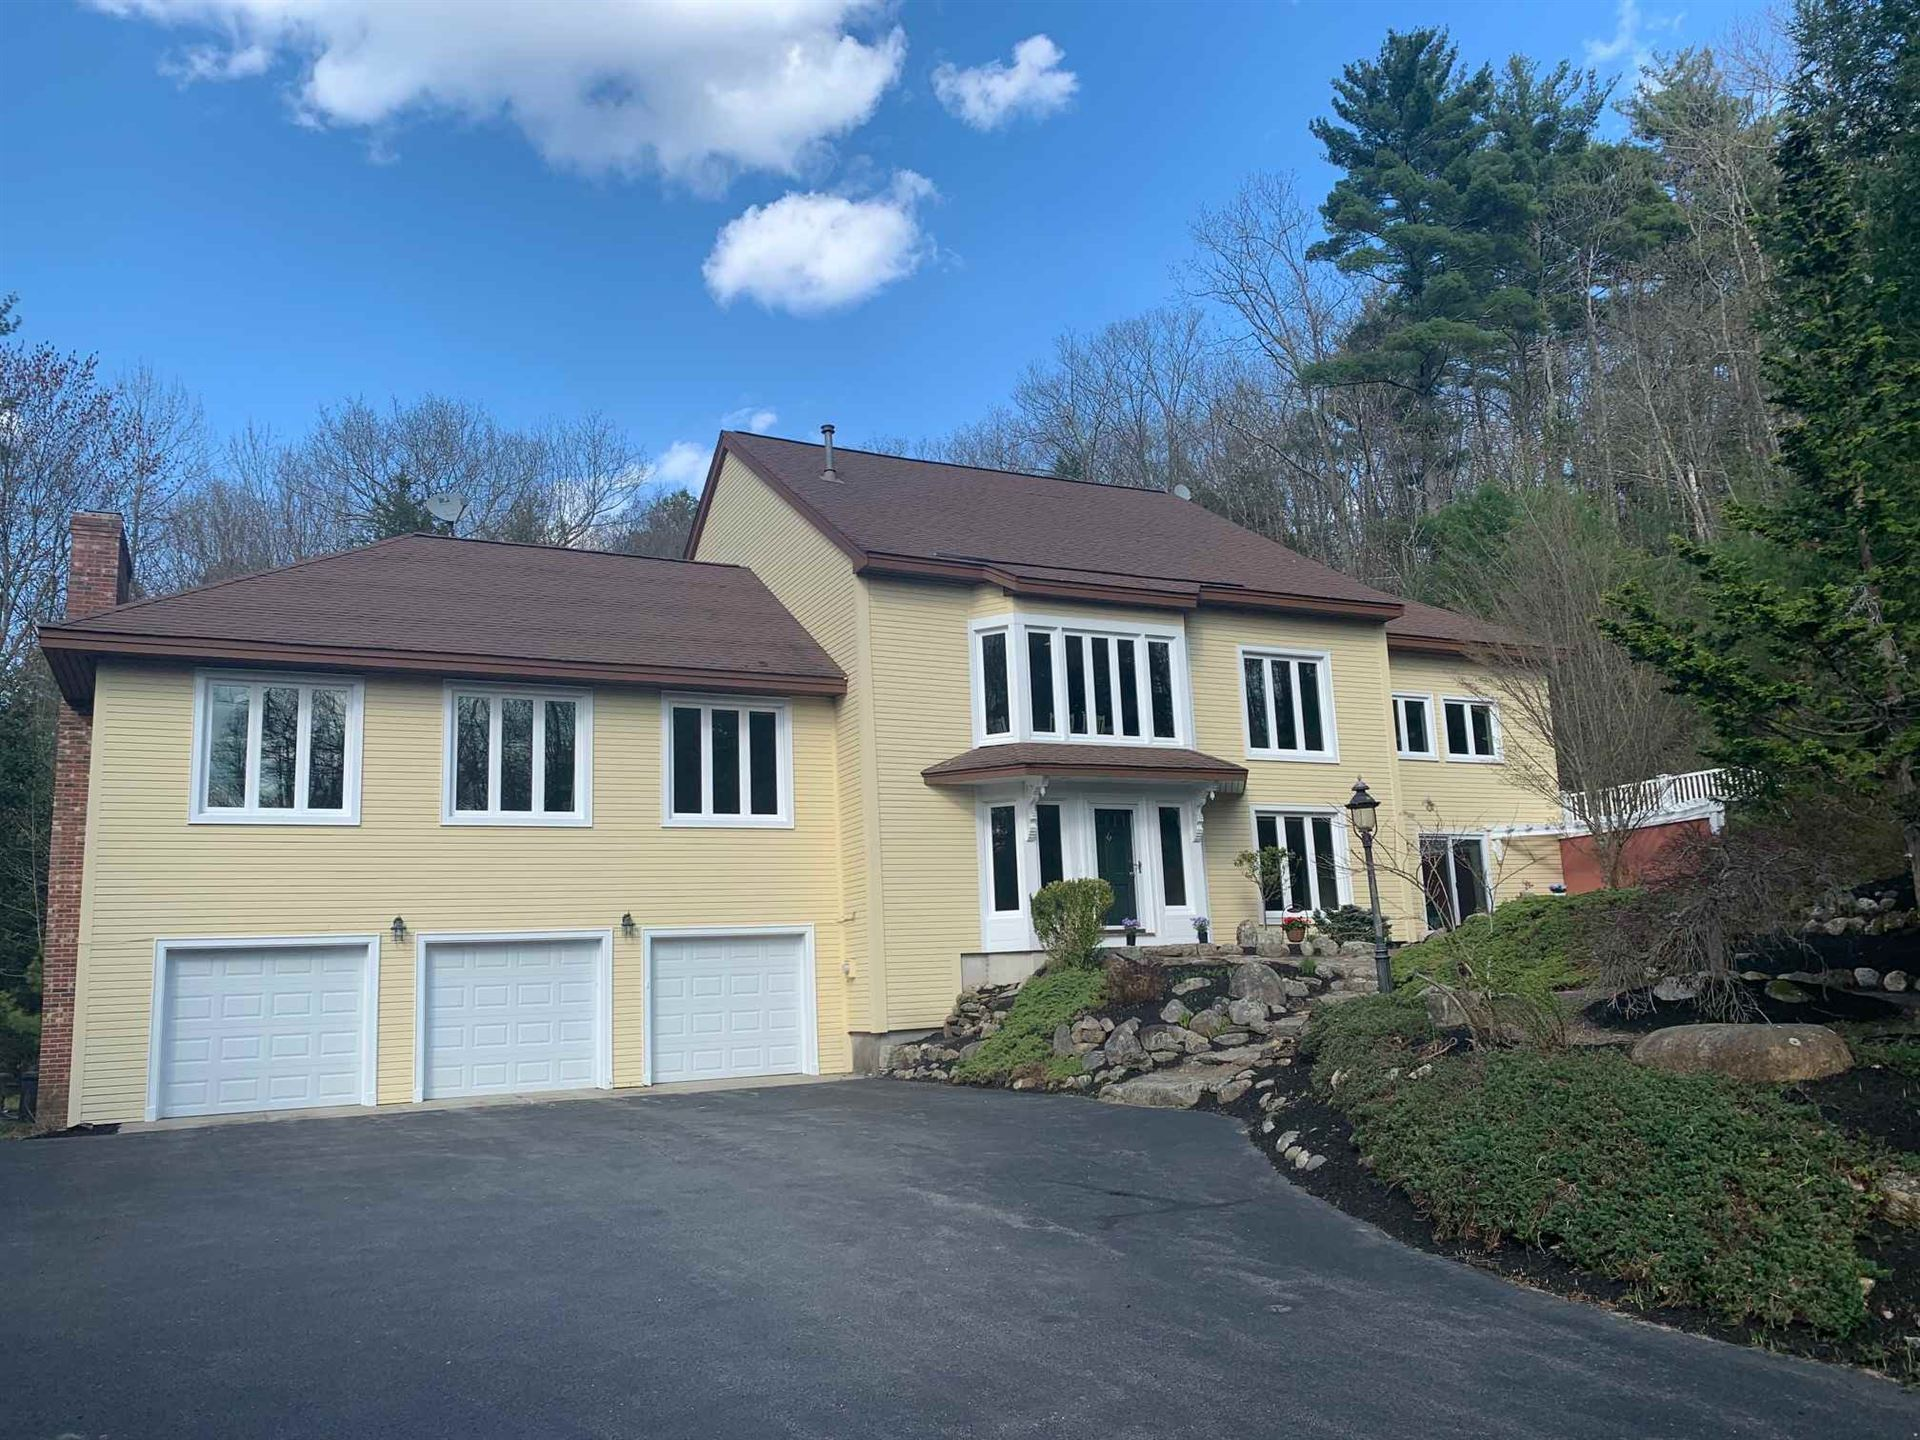 87 Horace Greeley Road, Amherst, NH 03031 - #: 4804388